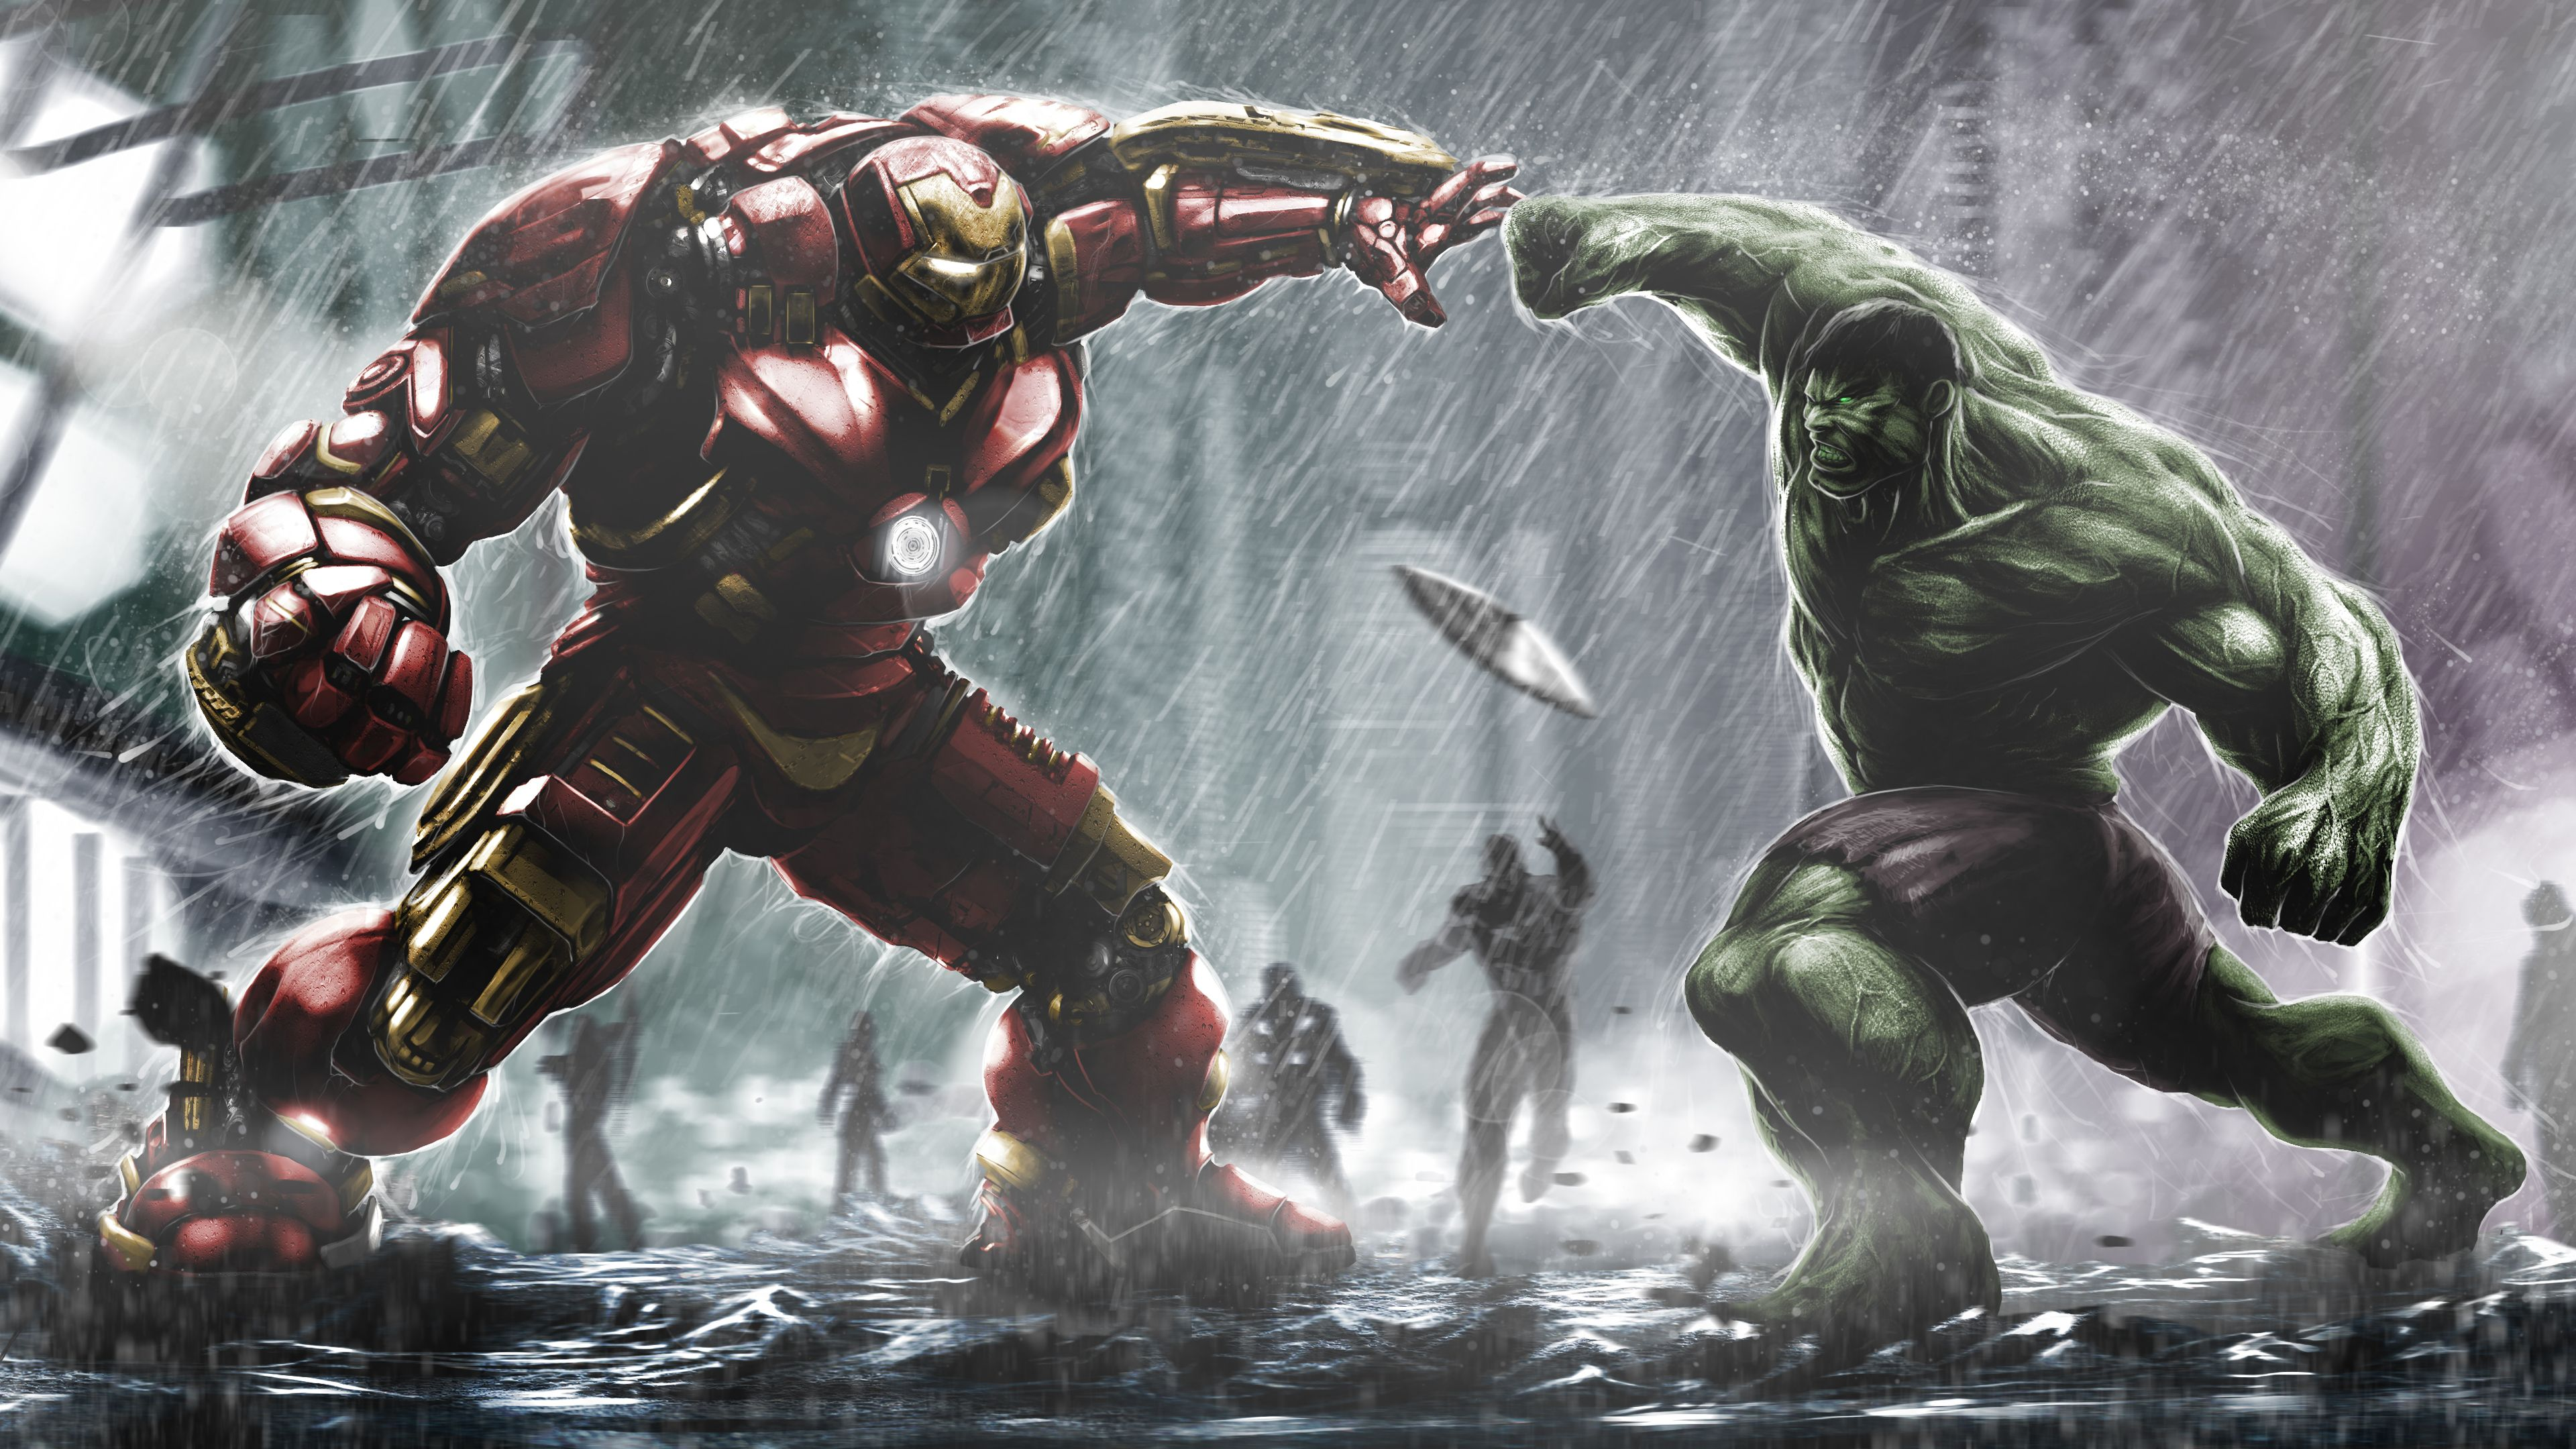 Iron Hulkbuster And Hulk Fight Artwork Superheroes Wallpapers Iron Man Wallpapers Hulkbuster Wallpapers H Marvel Wallpaper Hero Wallpaper Hulk Vs Hulkbuster